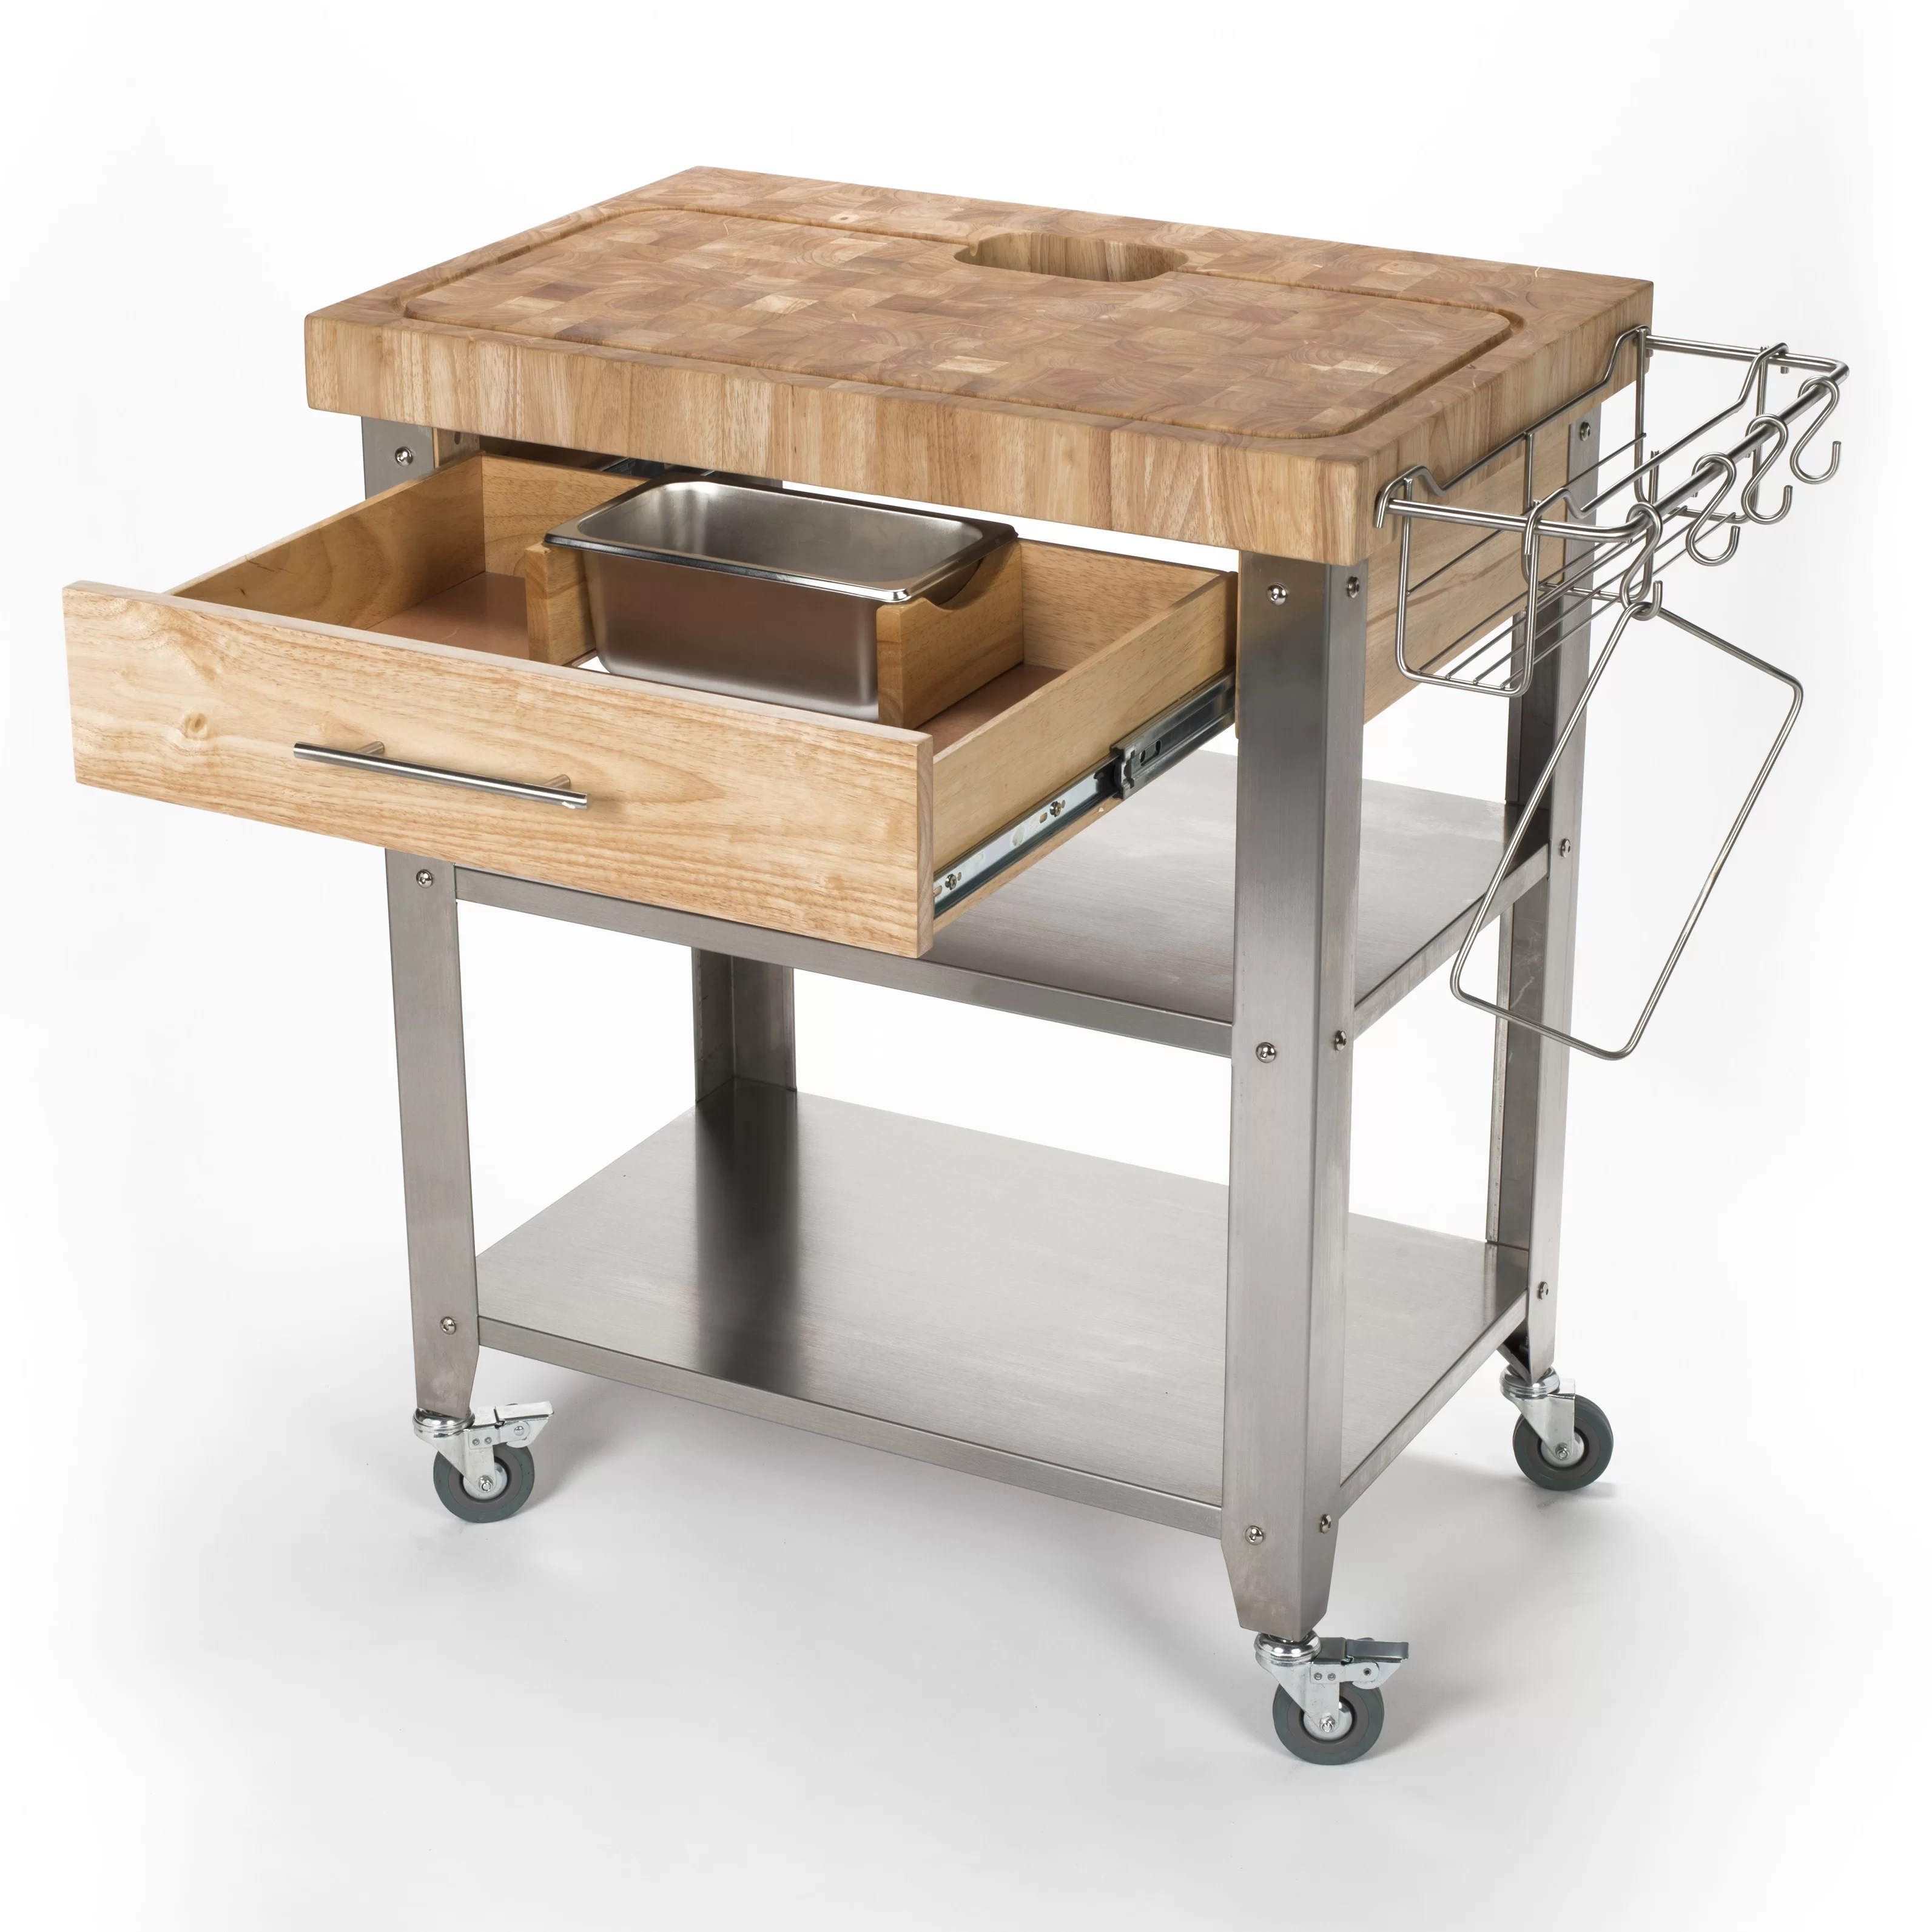 chris and kitchen cart cleaning cabinets pro stadium with butcher block